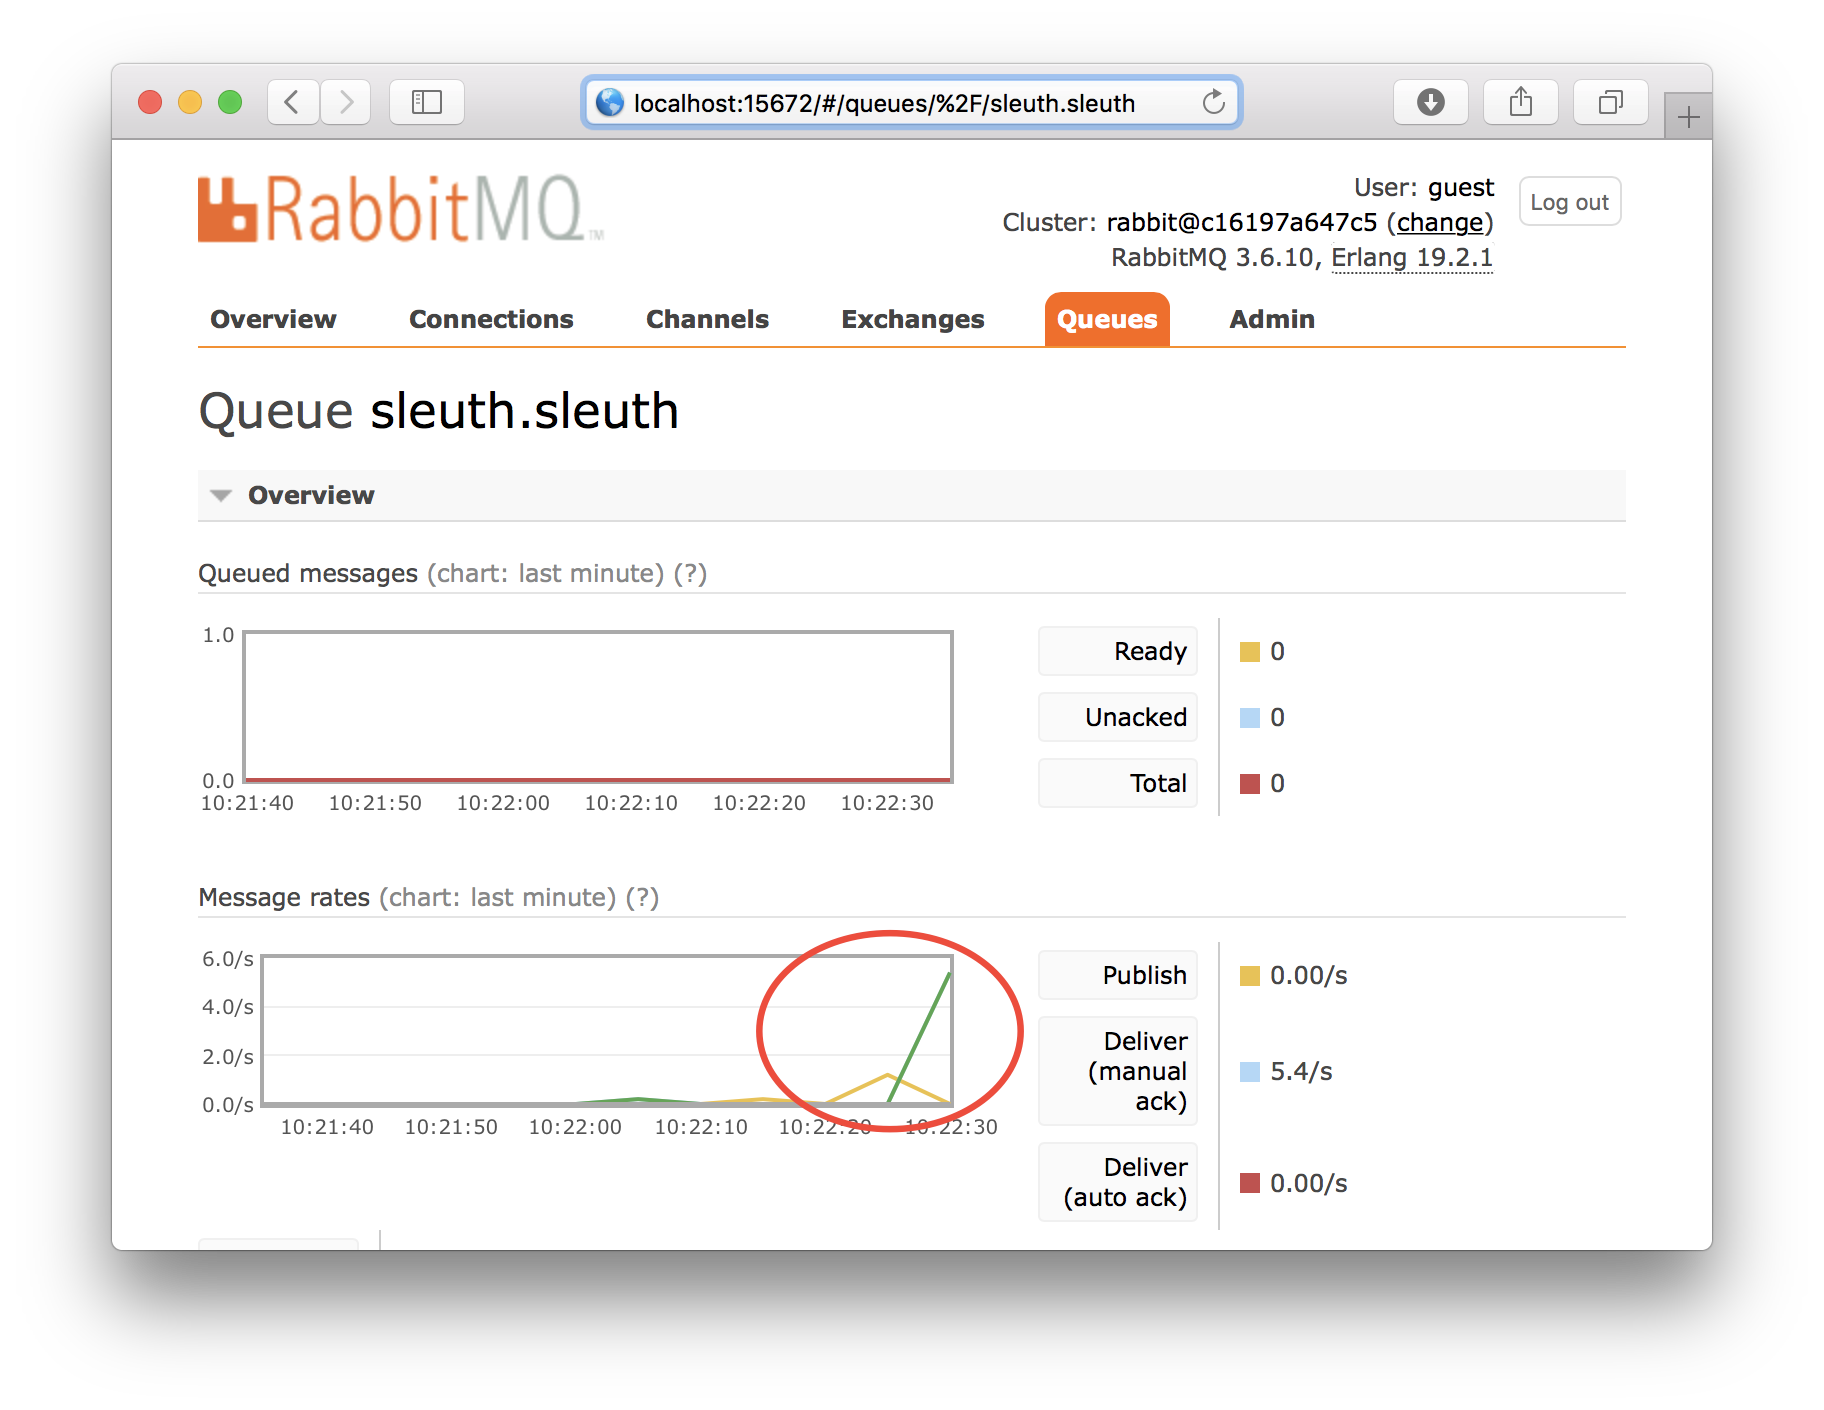 rabbitmq-trace-events